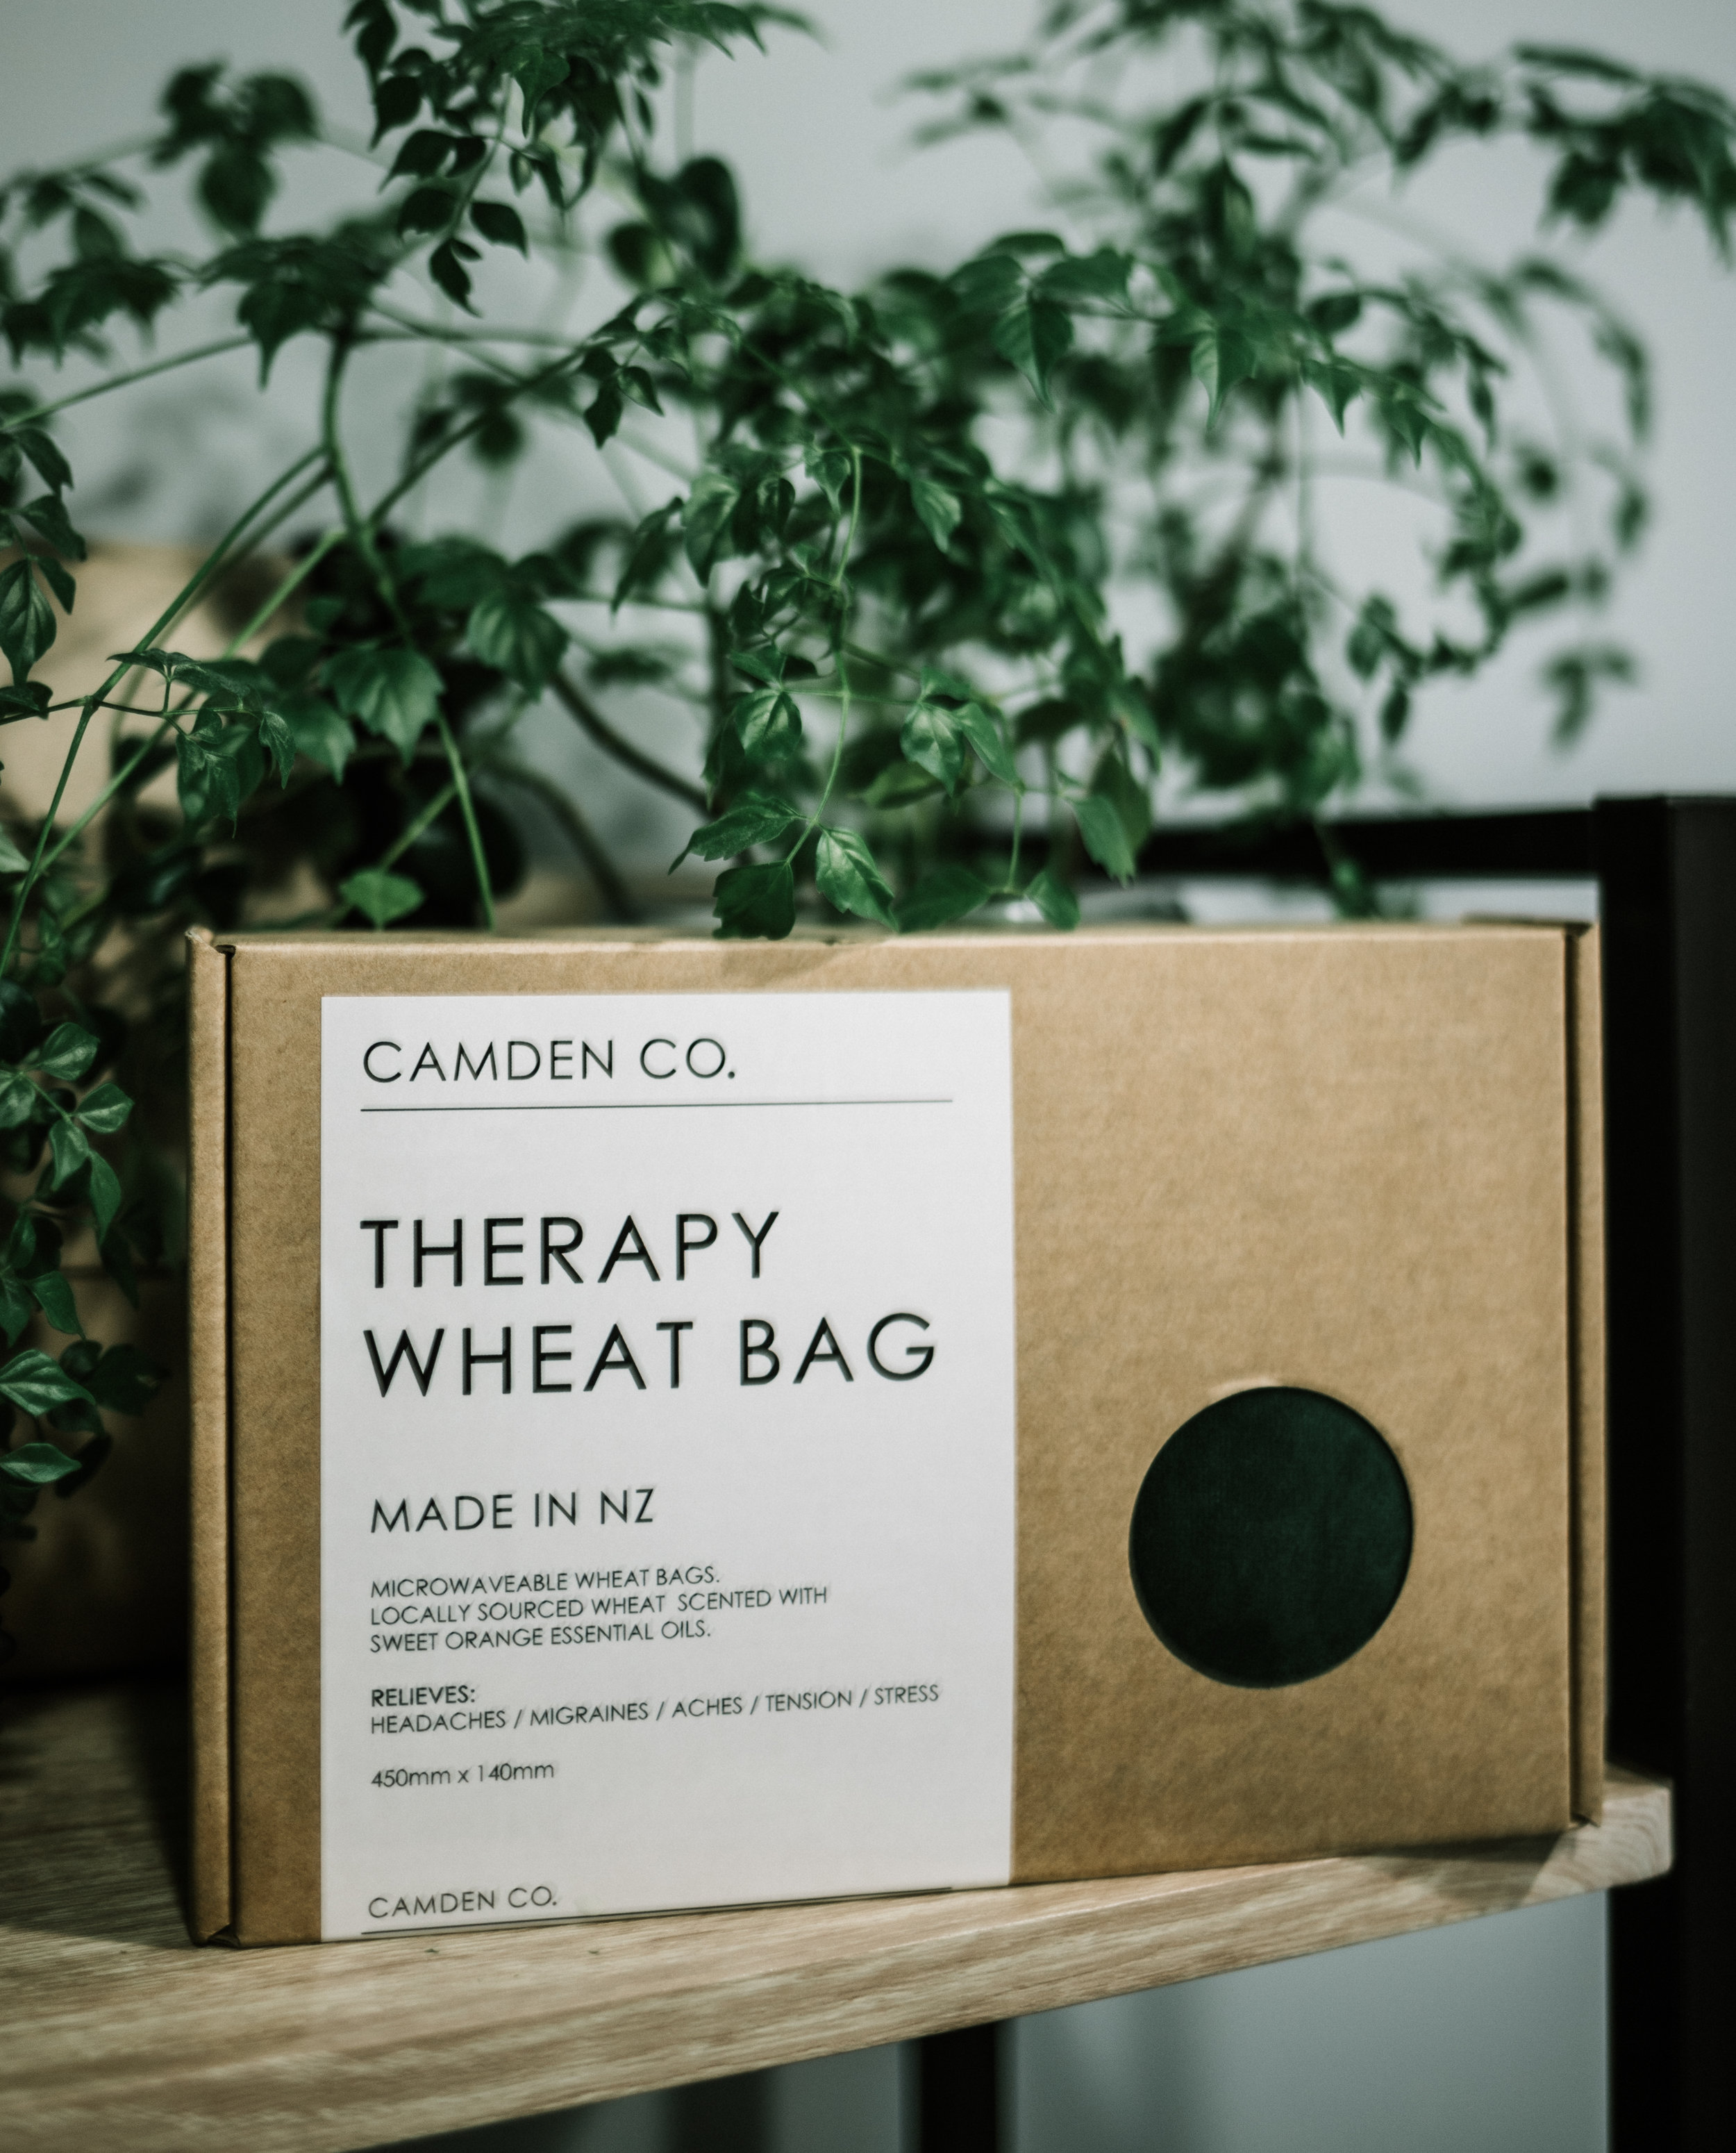 Camden Co. Velvet Wheat Therapy Bag | $45 - Handcrafted in New Zealand from locally grown wheat and locally sourced fabric, these Wheat Bags are a must have around the home. Camden Co's iconic scent infused with Sweet Orange and a hint of lavender.Camden Co Therapy Wheat Bags soothe aches, pains, sore muscles and tension around the neck and can be used hot or cold. They are a great alternative to hot water bottles on cold days and chilly evenings.